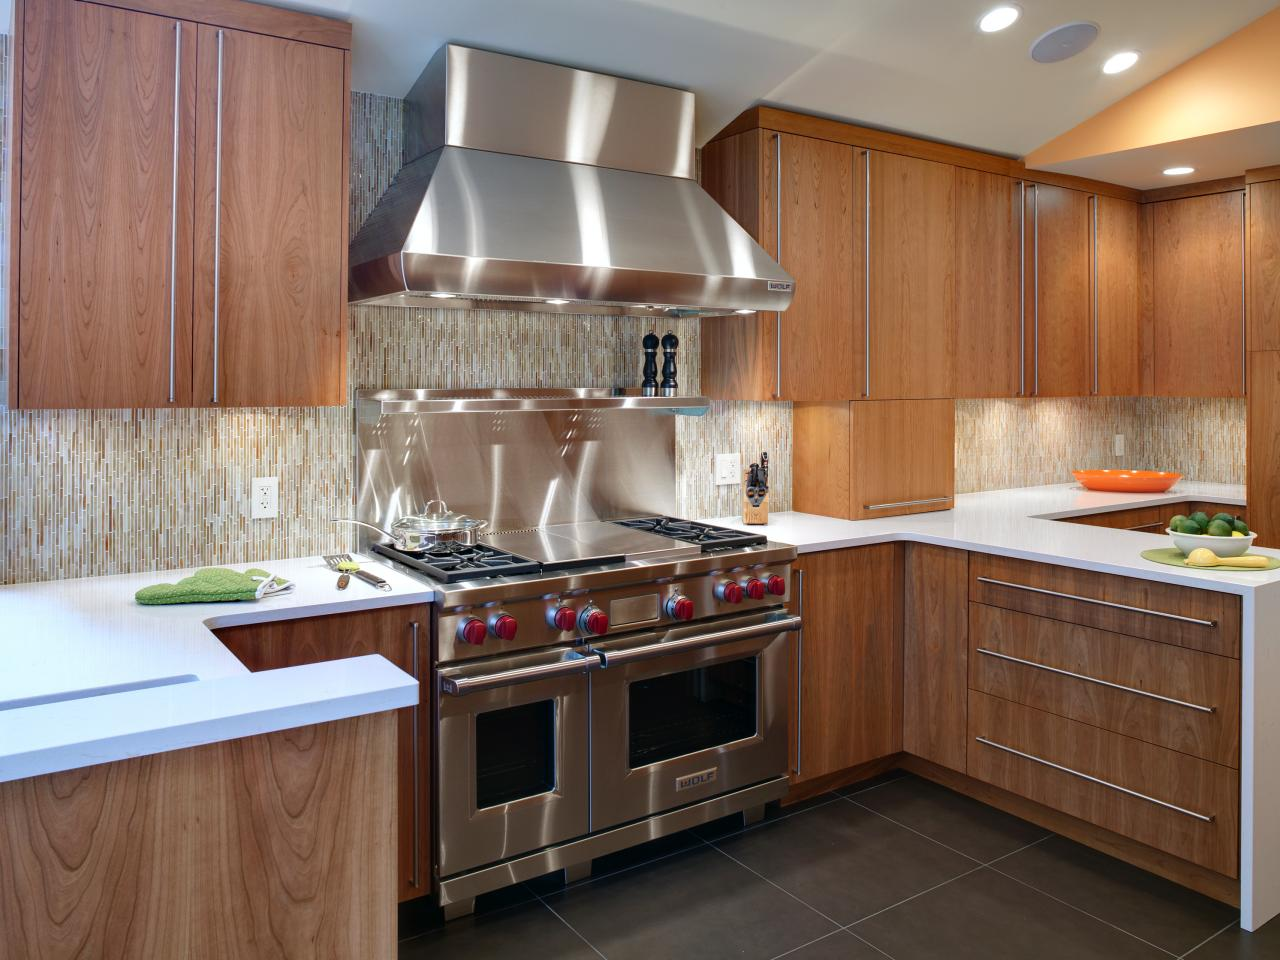 Choosing kitchen appliances hgtv for Cheap modern kitchen designs